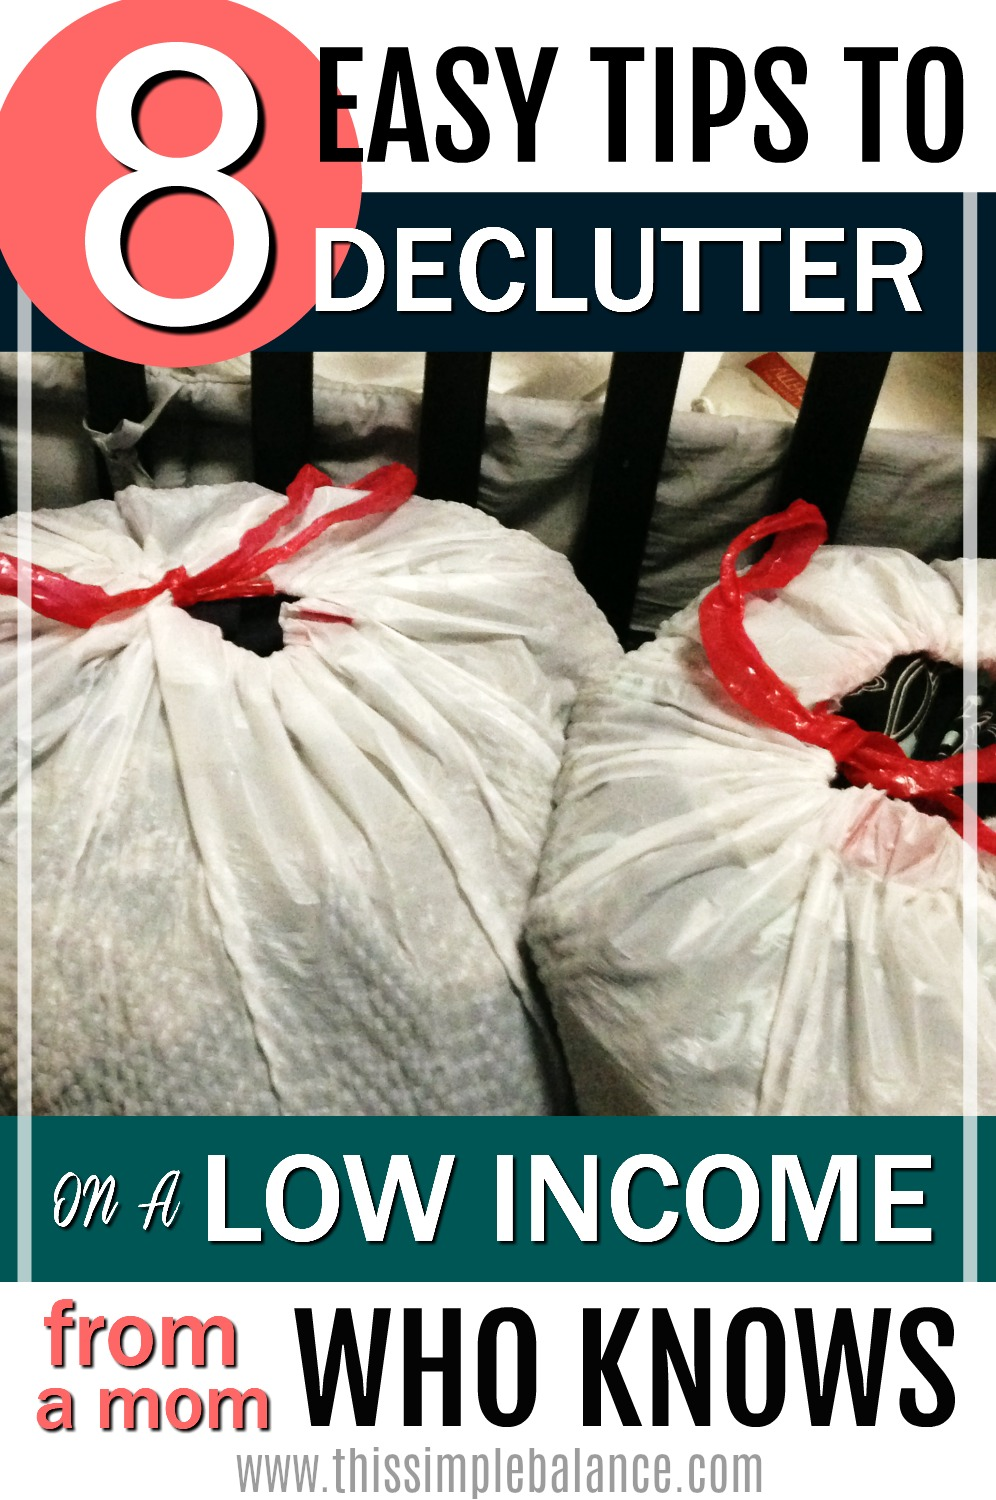 Decluttering on a low income | minimalist lifestyle